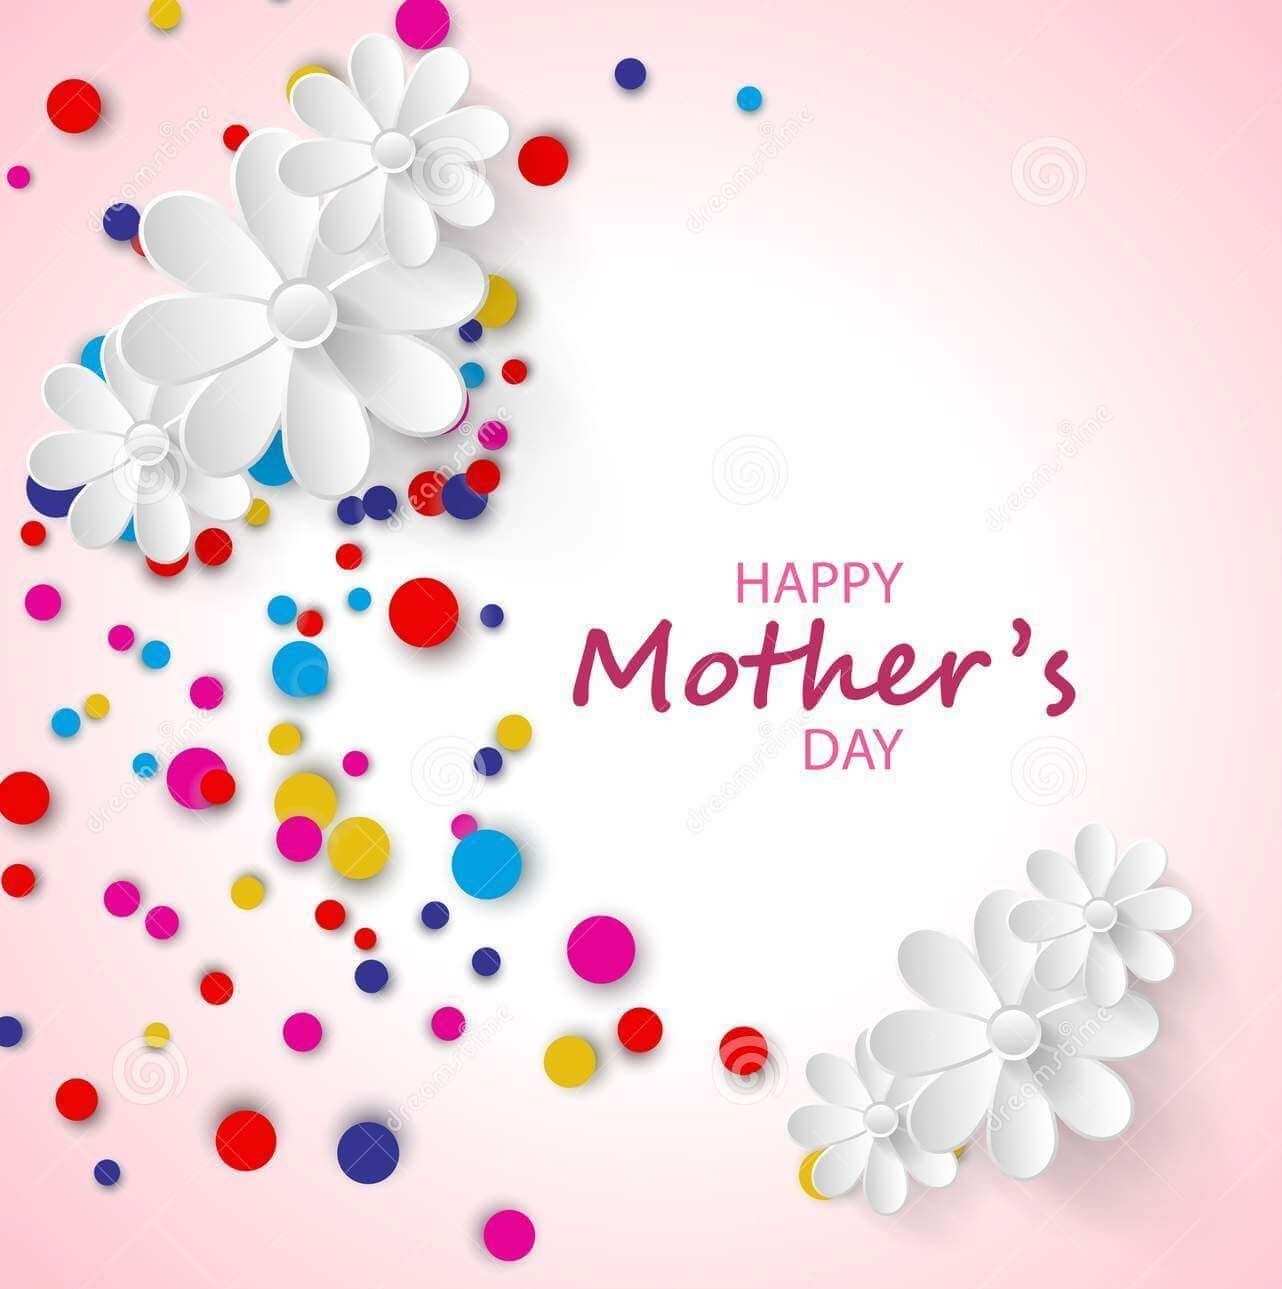 Mothers Day Quotes_uptodatedaily